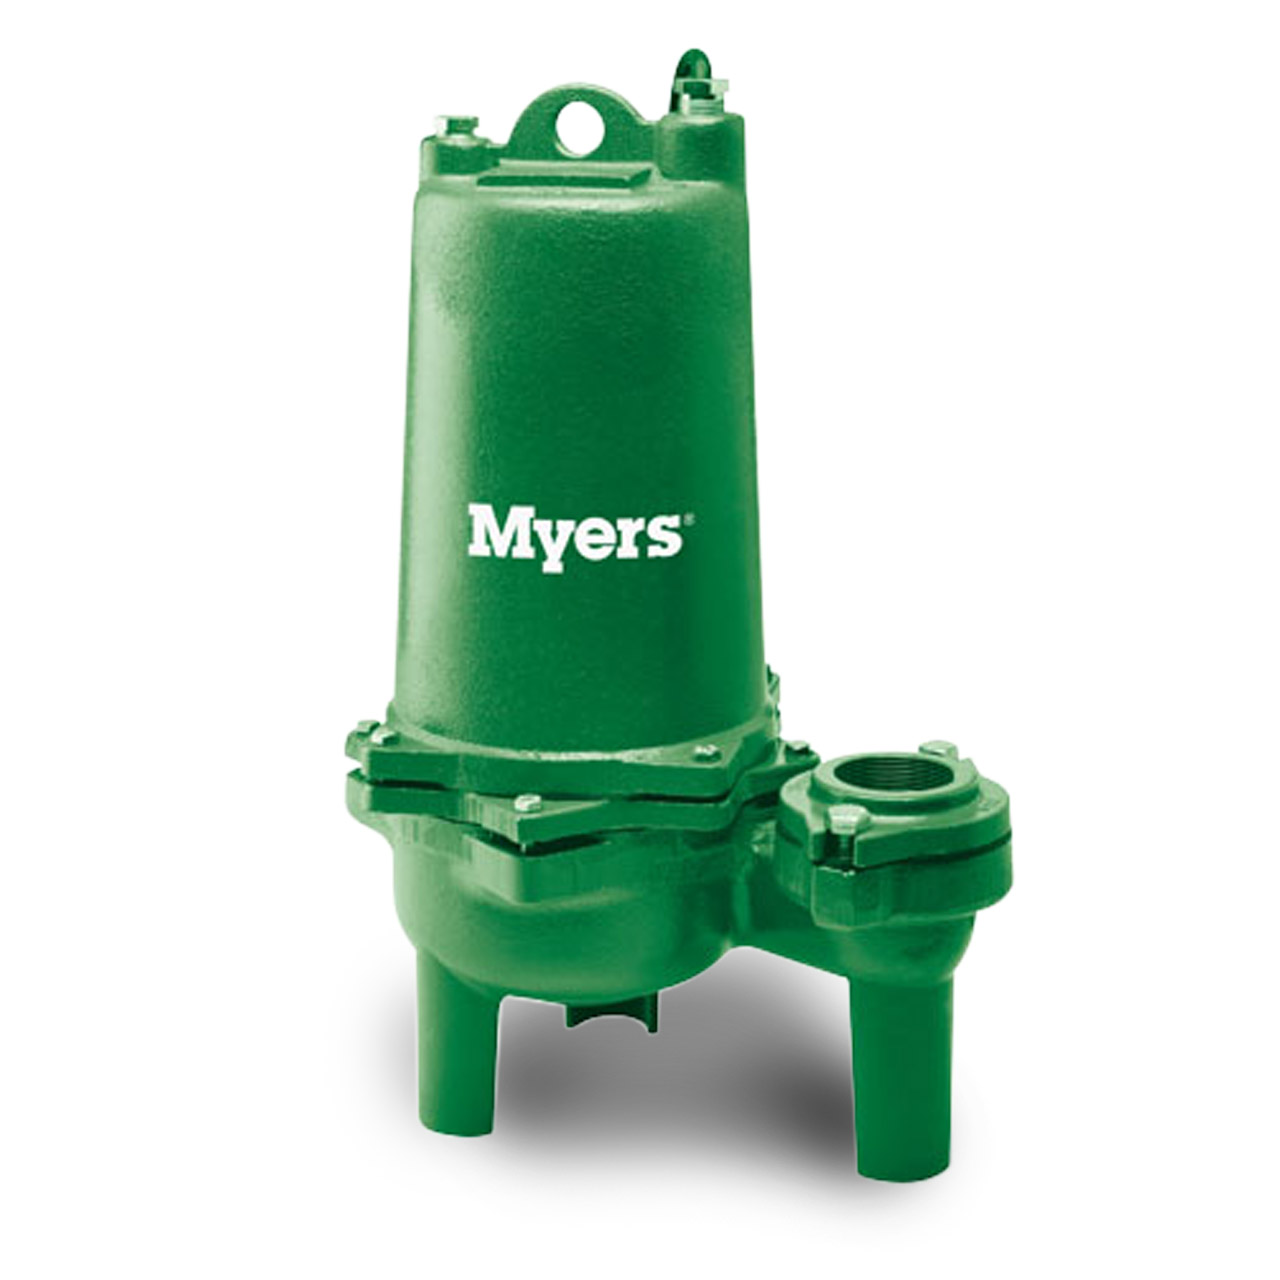 hight resolution of myers myers whr15h 21 high head sewage pump 1 5 hp 230v 1 ph manual